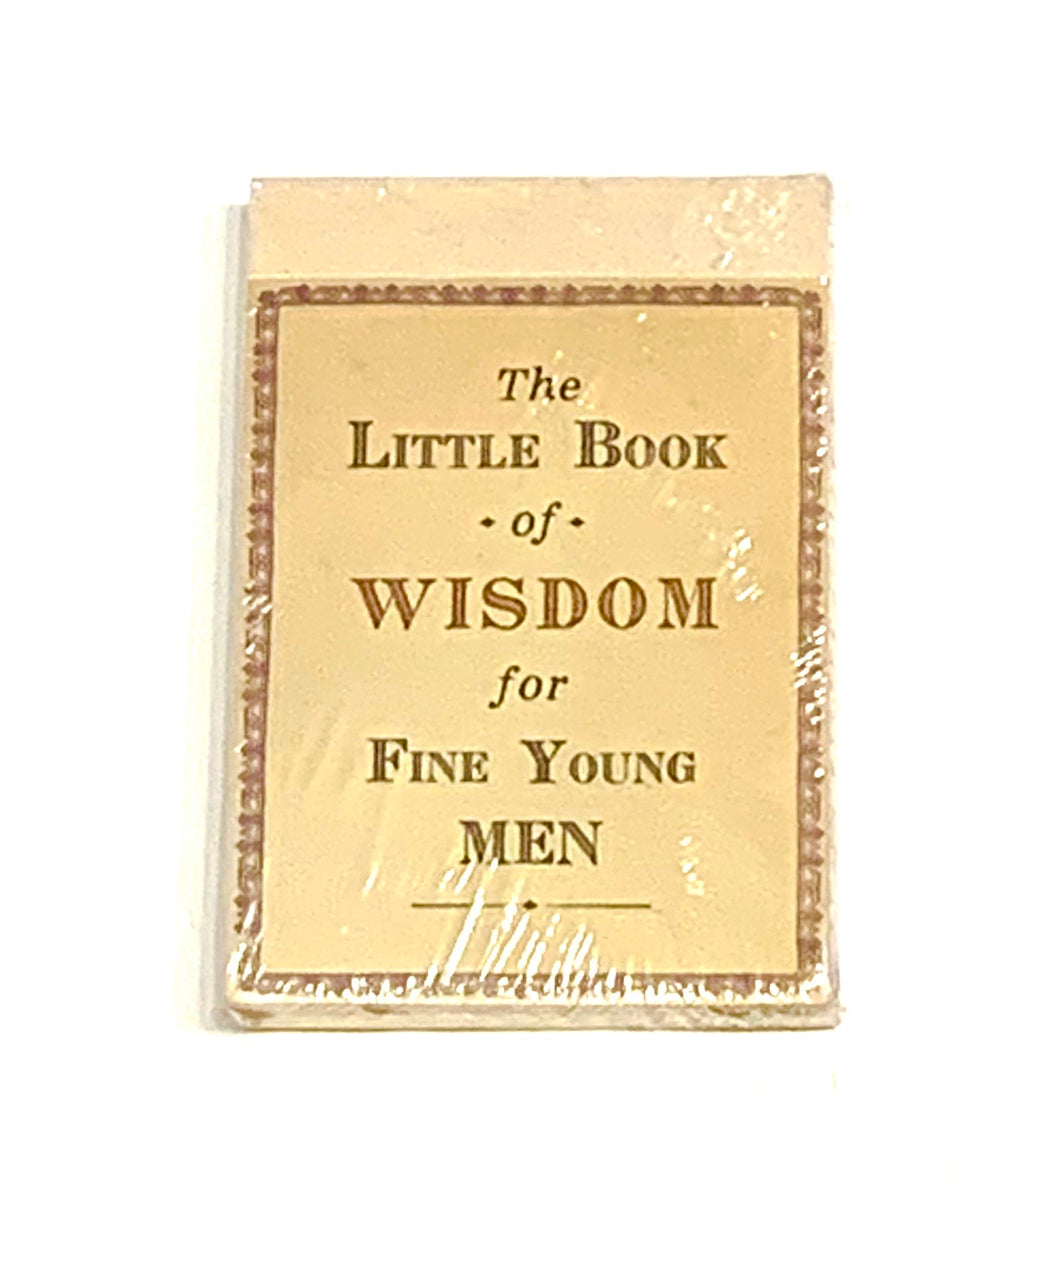 Little Book of Wisdom for Fine Young Men